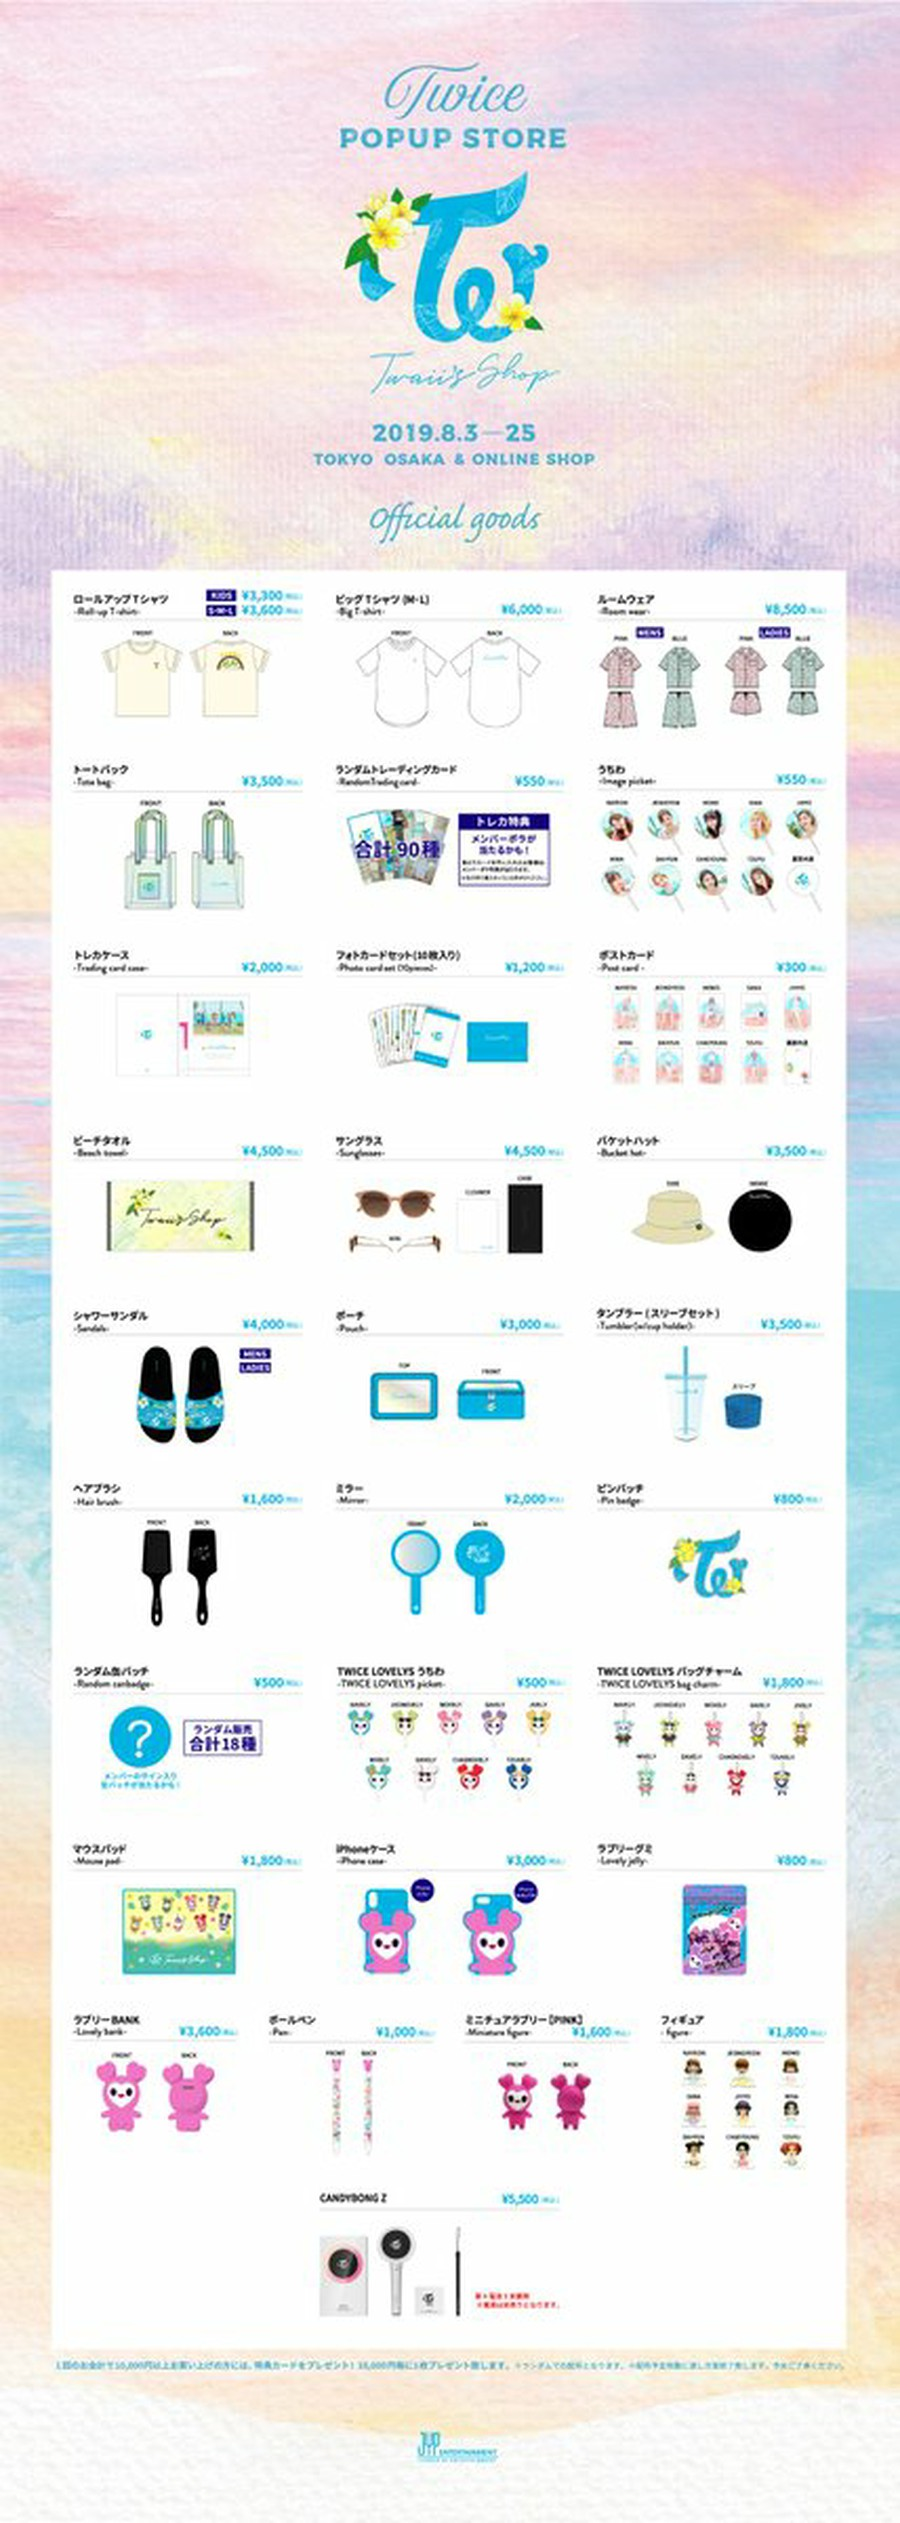 Jt Official] TWICE POPUP STORE